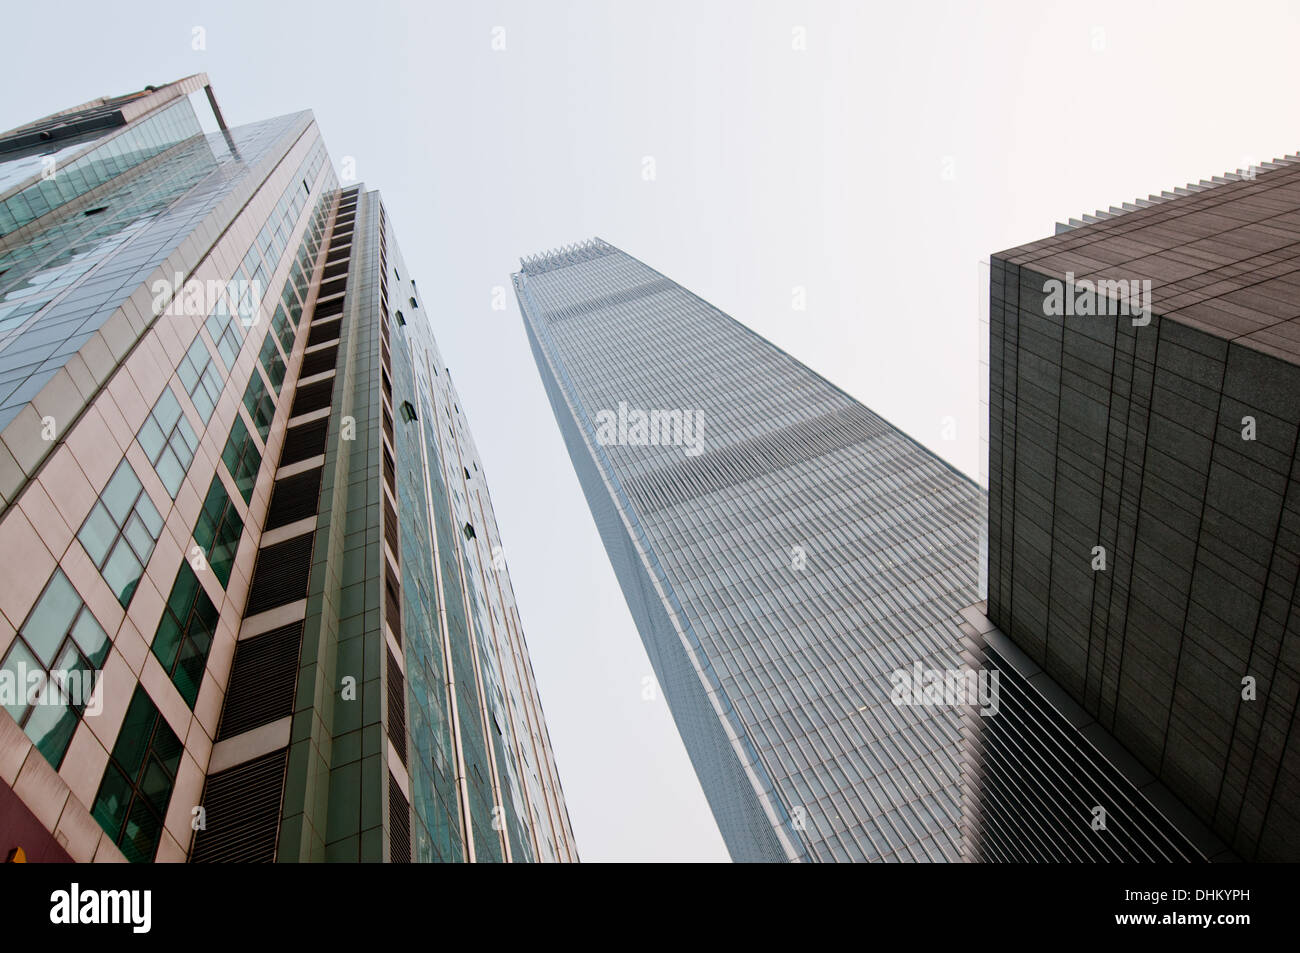 E-Tower (left) and China World Trade Center Tower 3 in Beijing Central Business District (CBD), Chaoyang, Beijing, China - Stock Image